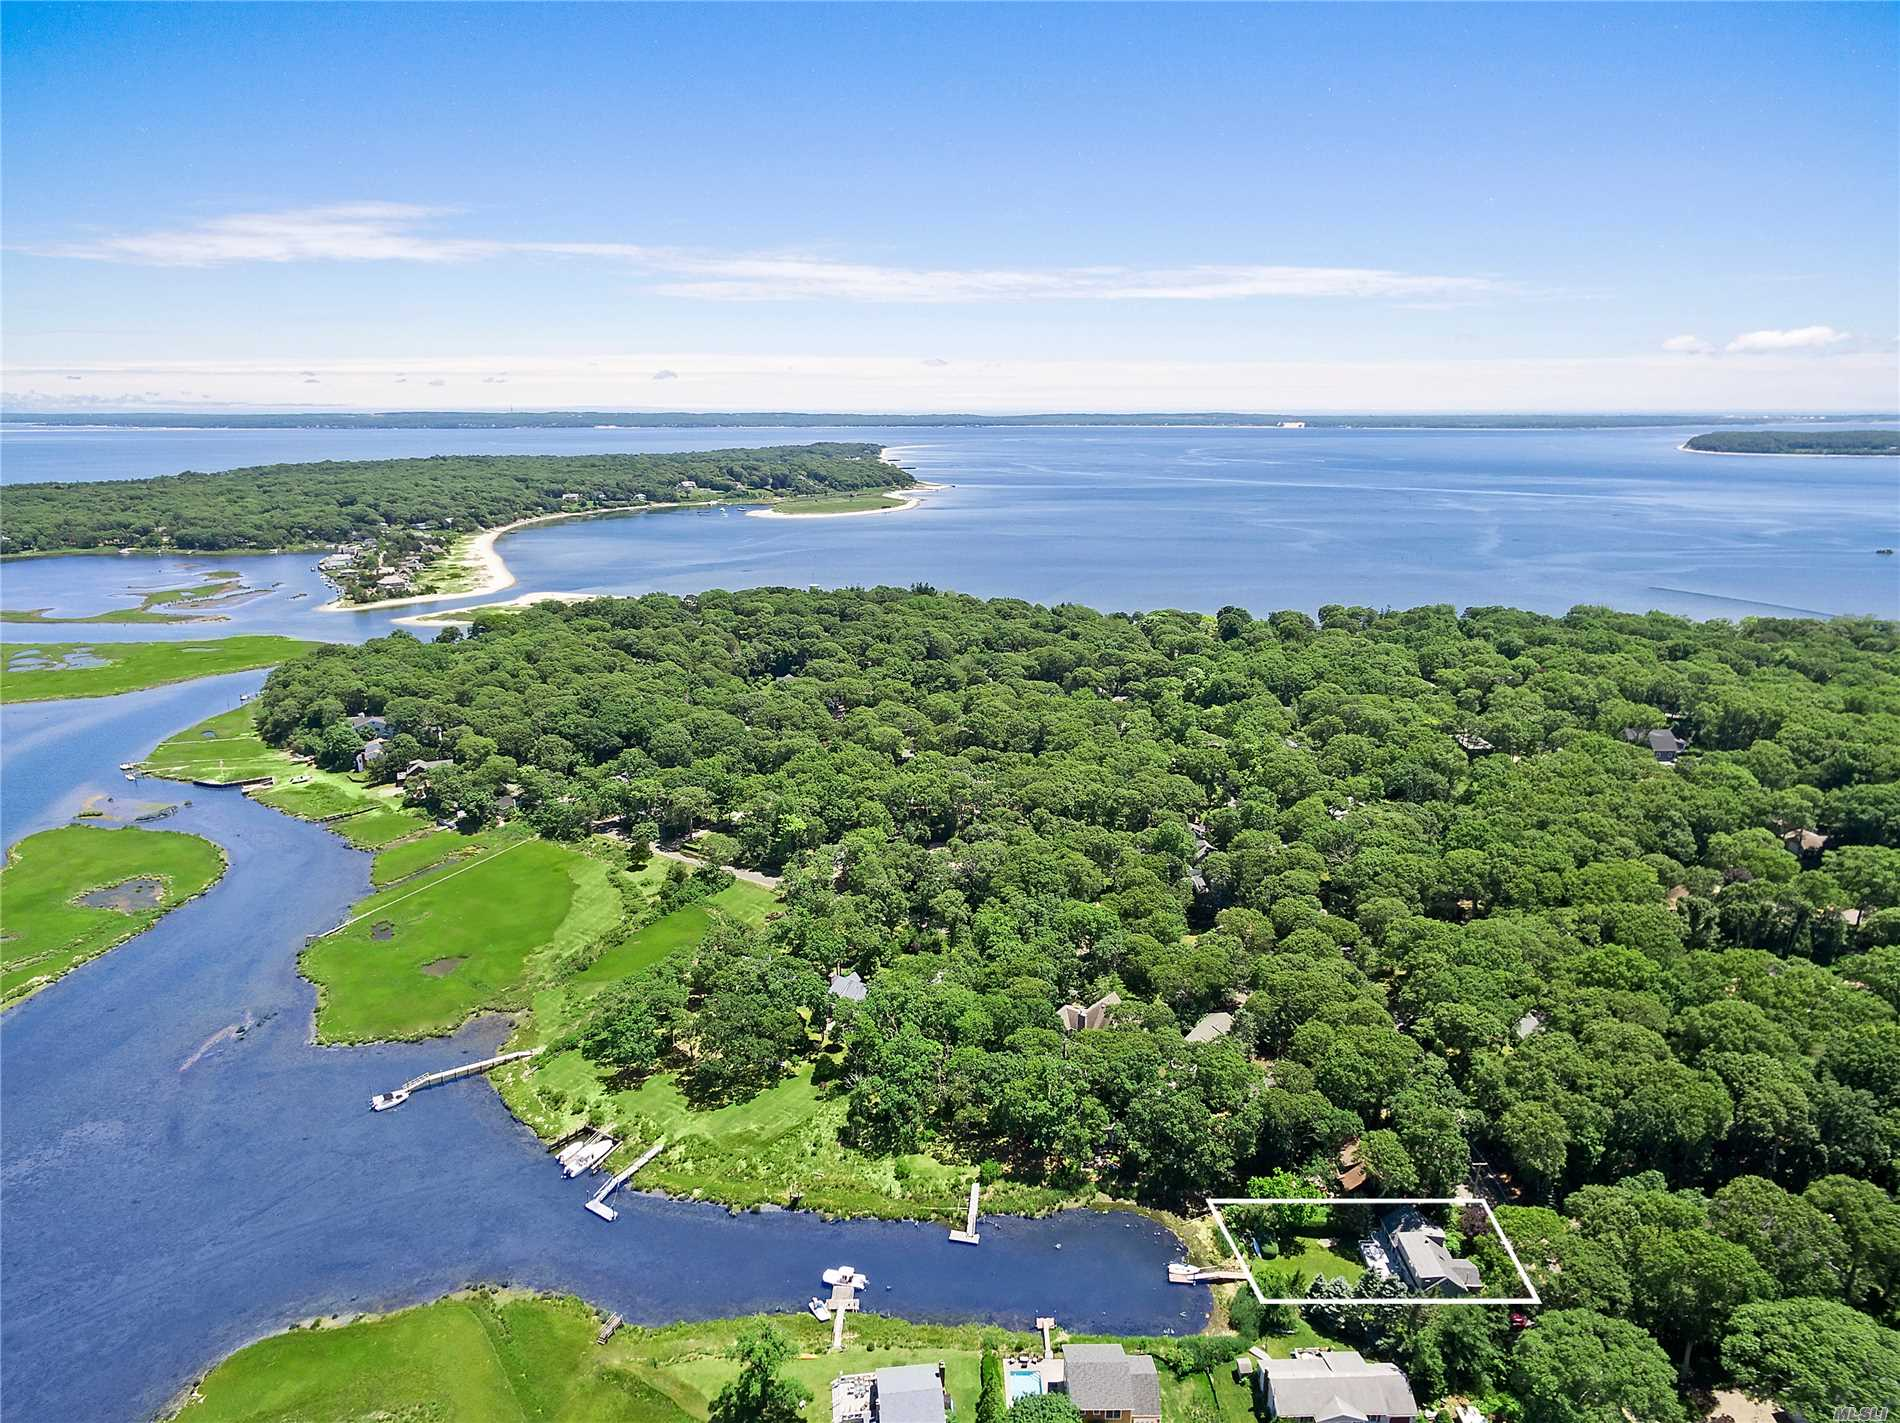 Priced Reduced On This Waterfront Home In Sought After Fleets Neck, Cutchogue With Gorgeous View Of East Creek. This Charming 2 Story Home Has 3 Bedrooms And 3 Baths, With The Master Bedroom On The 1st Floor. Skylights Over The Cathedral Living Room Bring In Beautiful Natural Light. A Den On The 1st Floor May Be Used As An Extra Bedroom If Needed. On The Second Floor Is A Loft Room/Office And 2 Additional Bedrooms. There Is A Large Deck And A Dock With Room For 2 Boats. Association Beach.